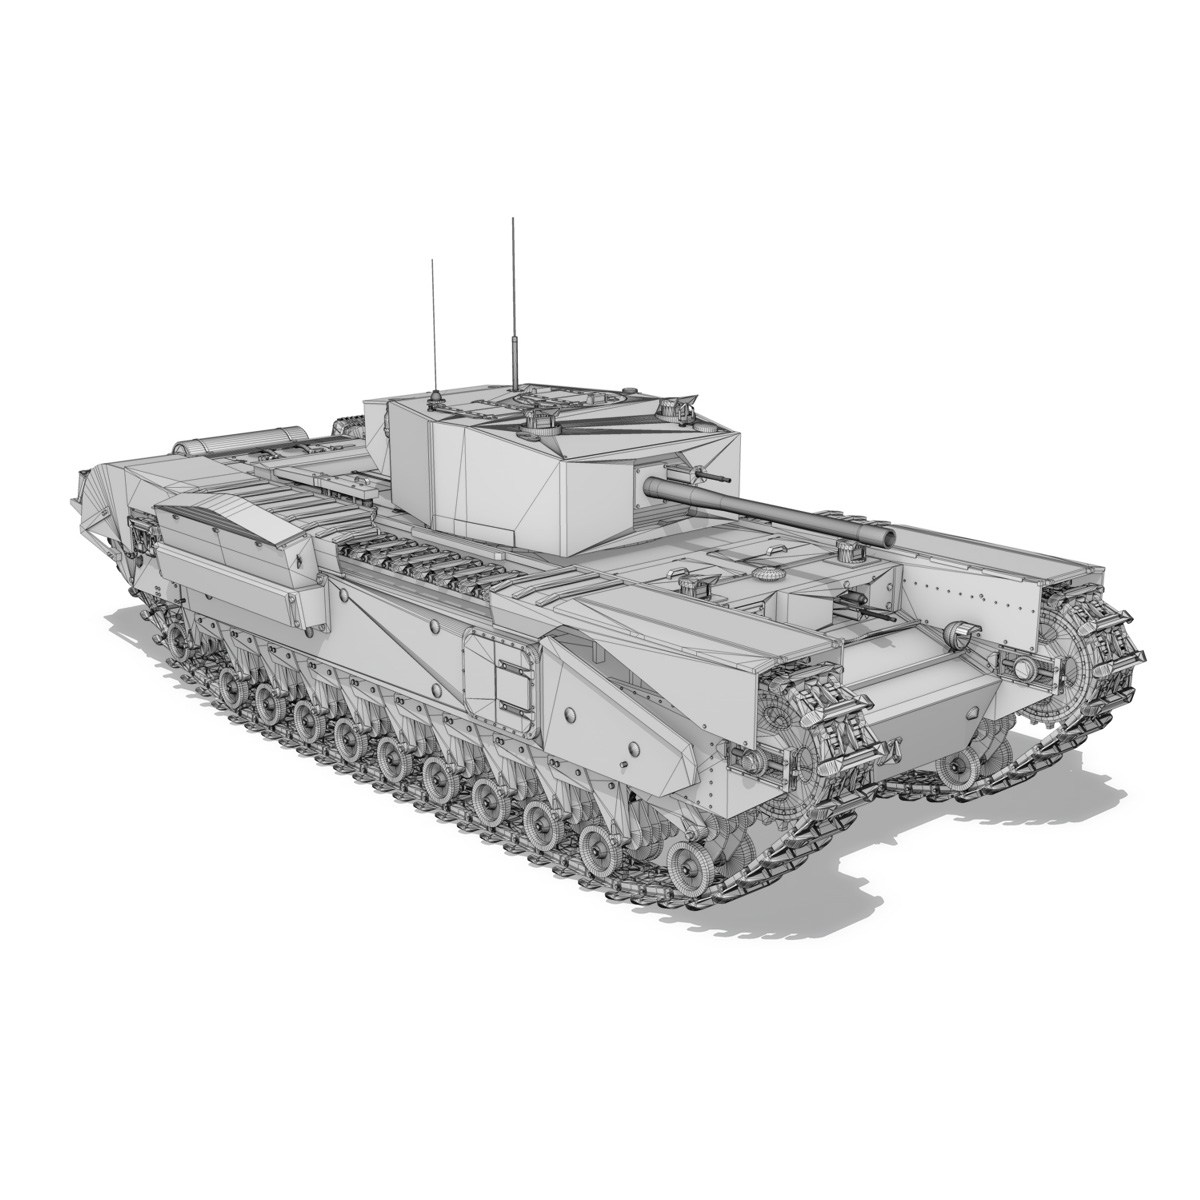 churchill mk.iii - cyclops 3d model 3ds fbx c4d lwo obj 270907